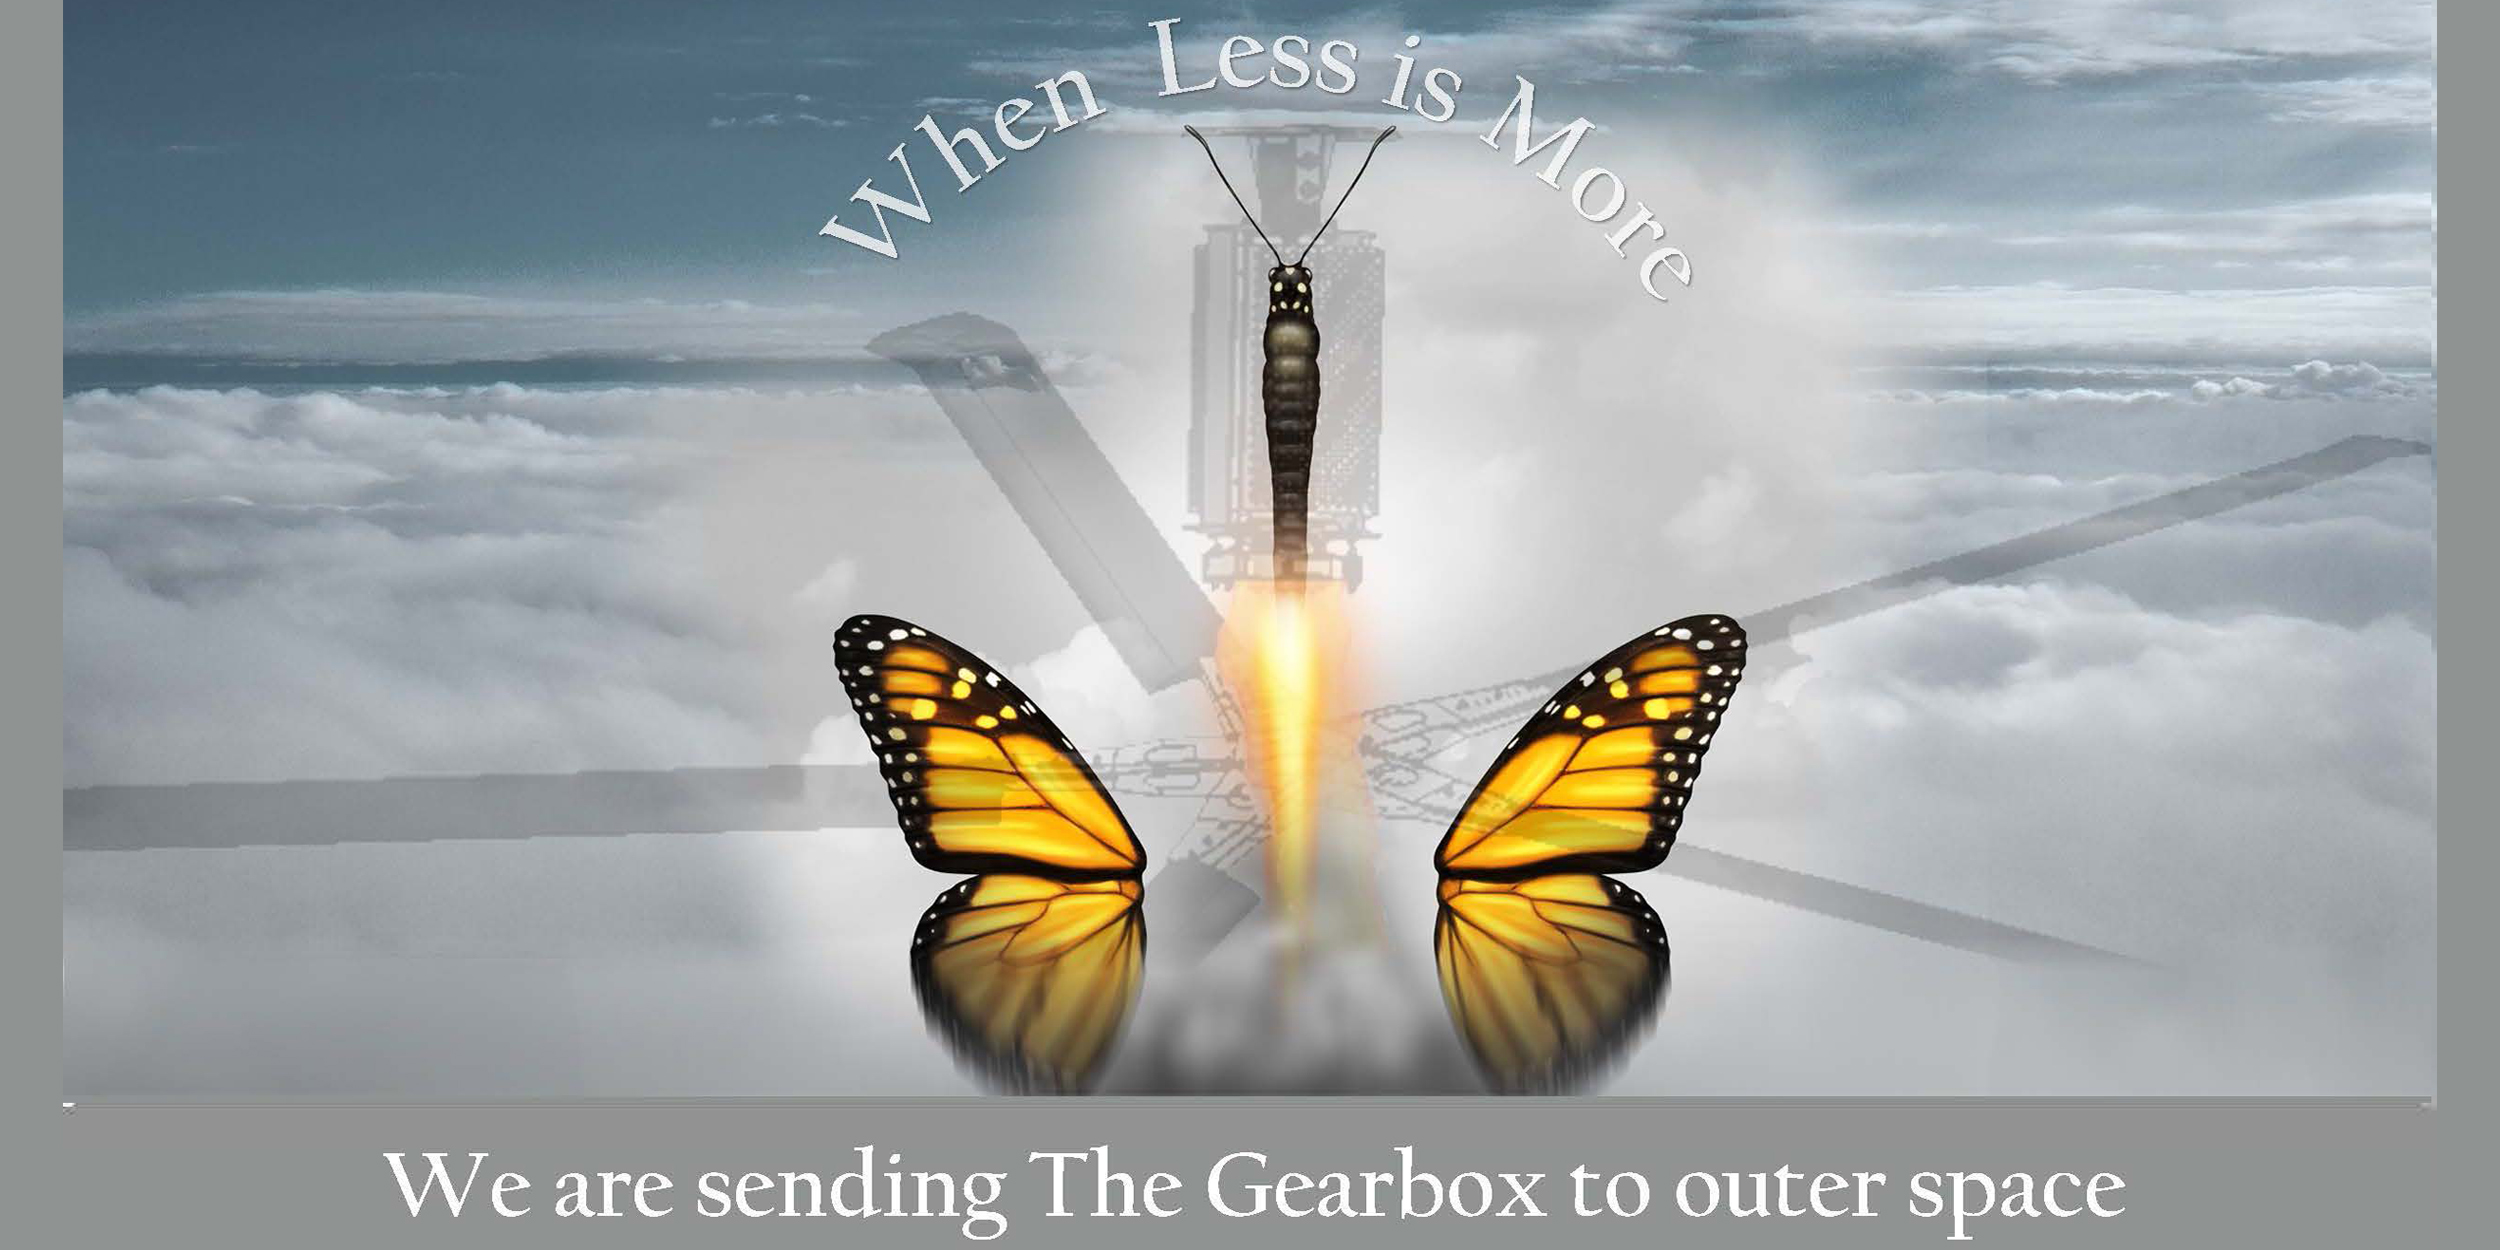 We are sending the Gearbox to Outerspace